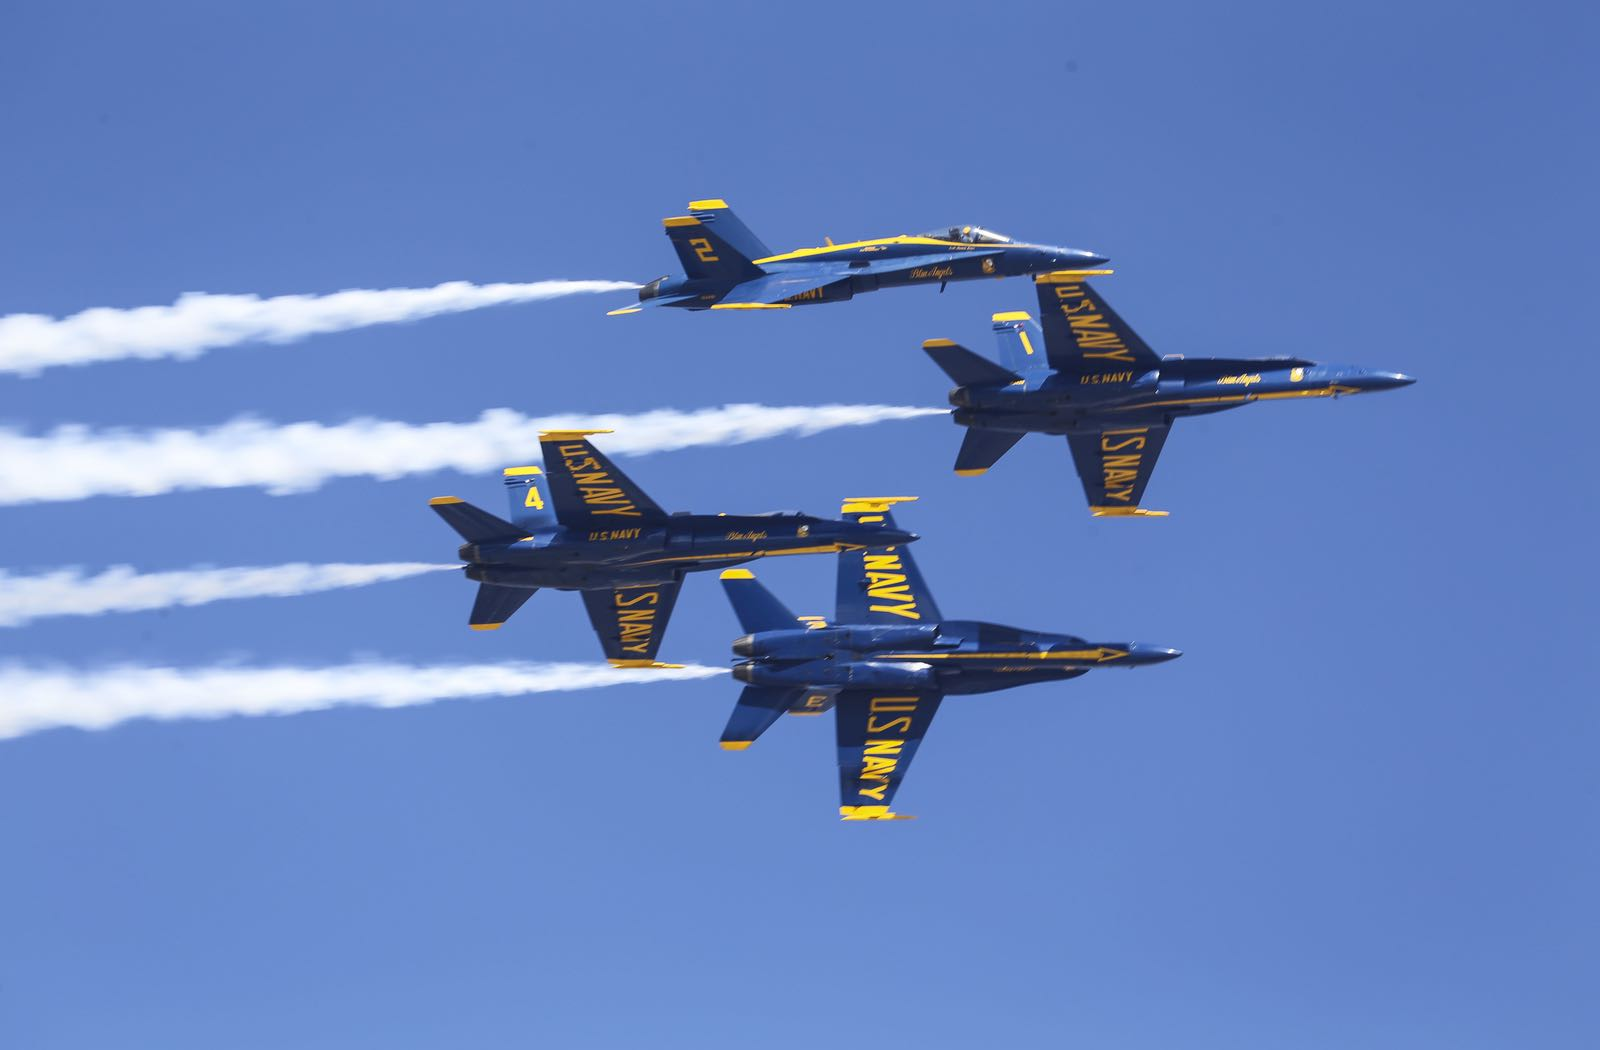 US Navy Blue Angels 2018 MCAS Miramar Air Show - Top Things to Do in San Diego